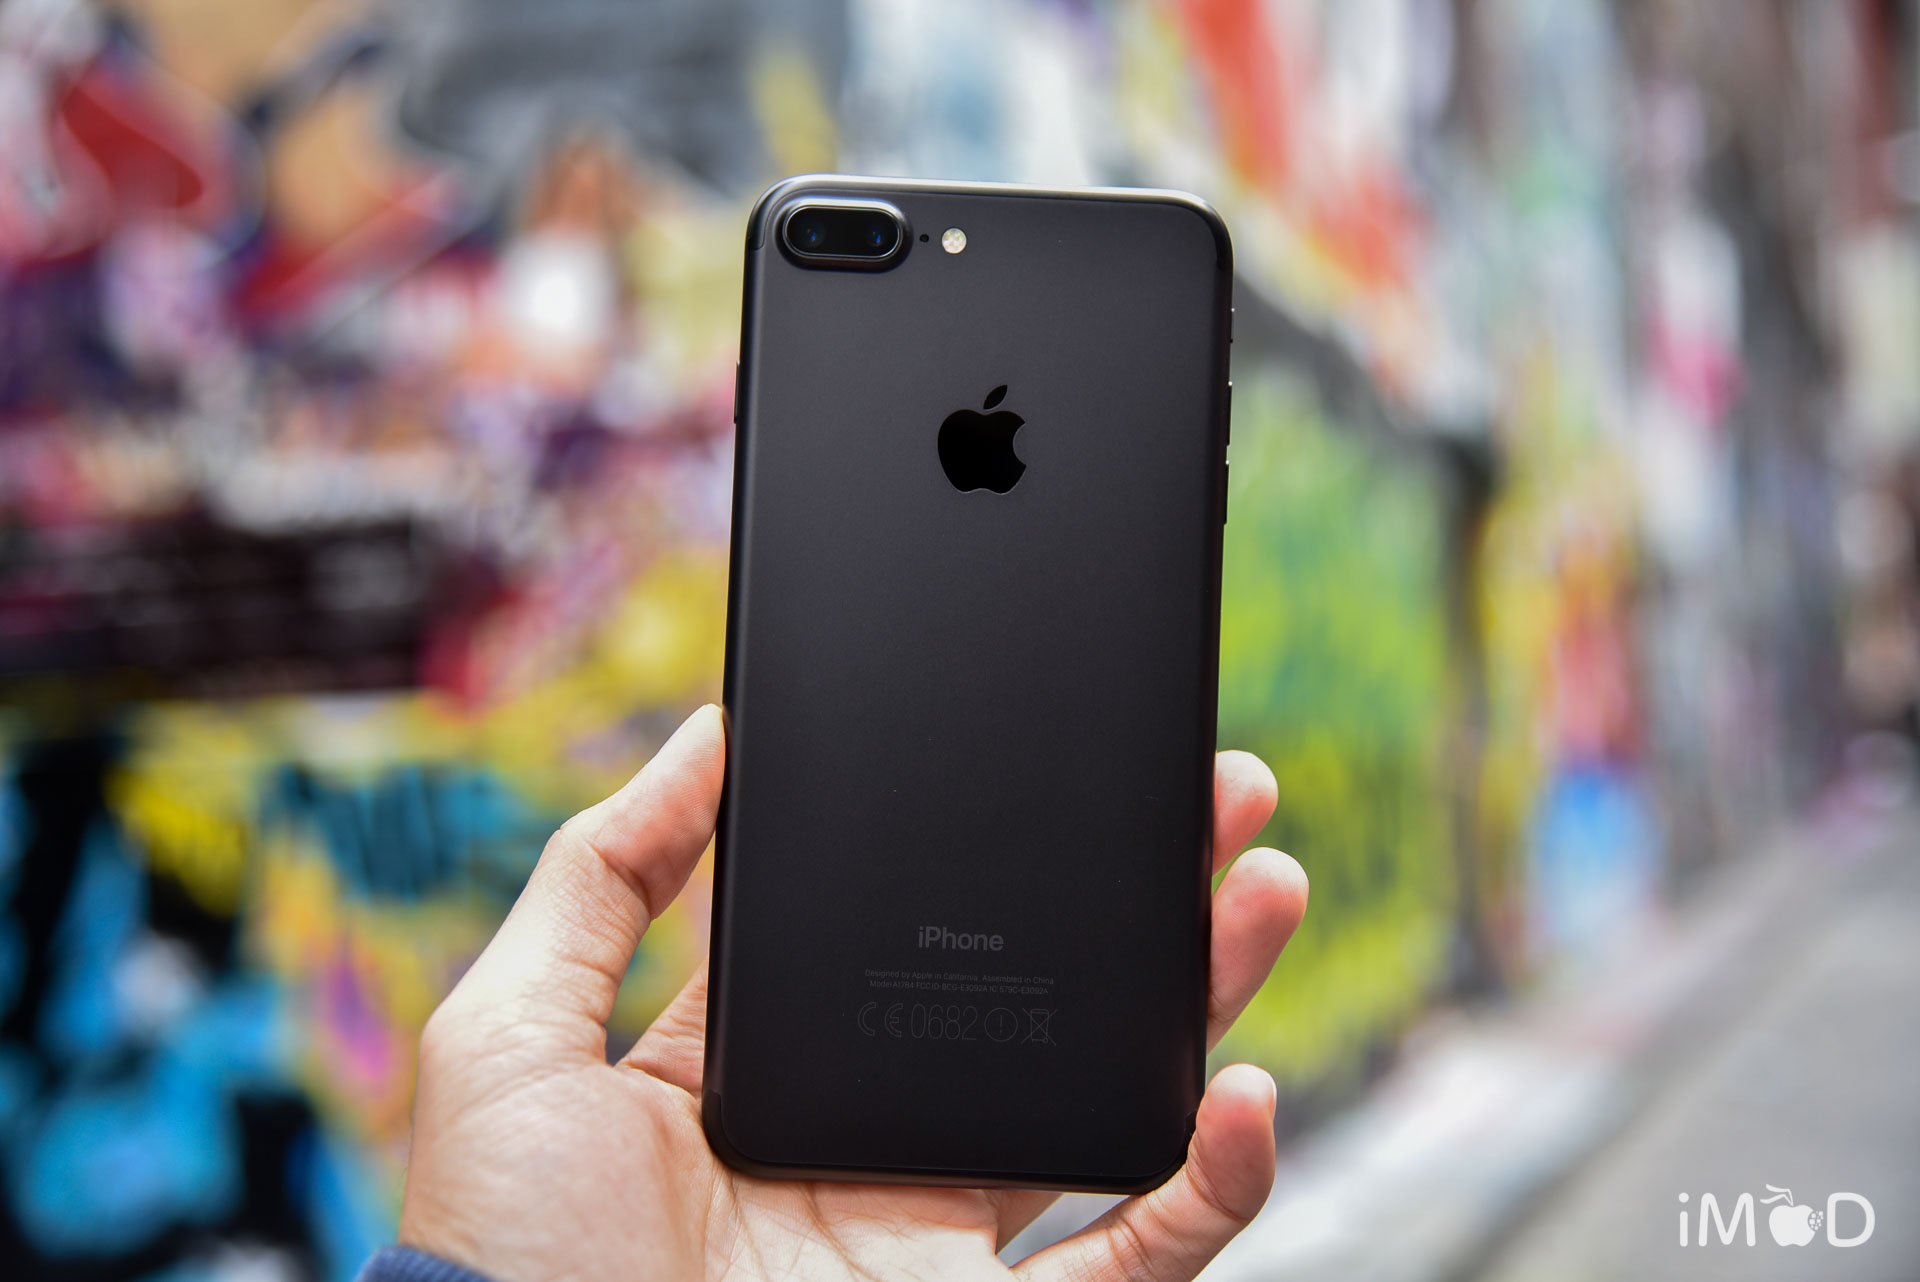 iphone-7-7plus-review-1-9